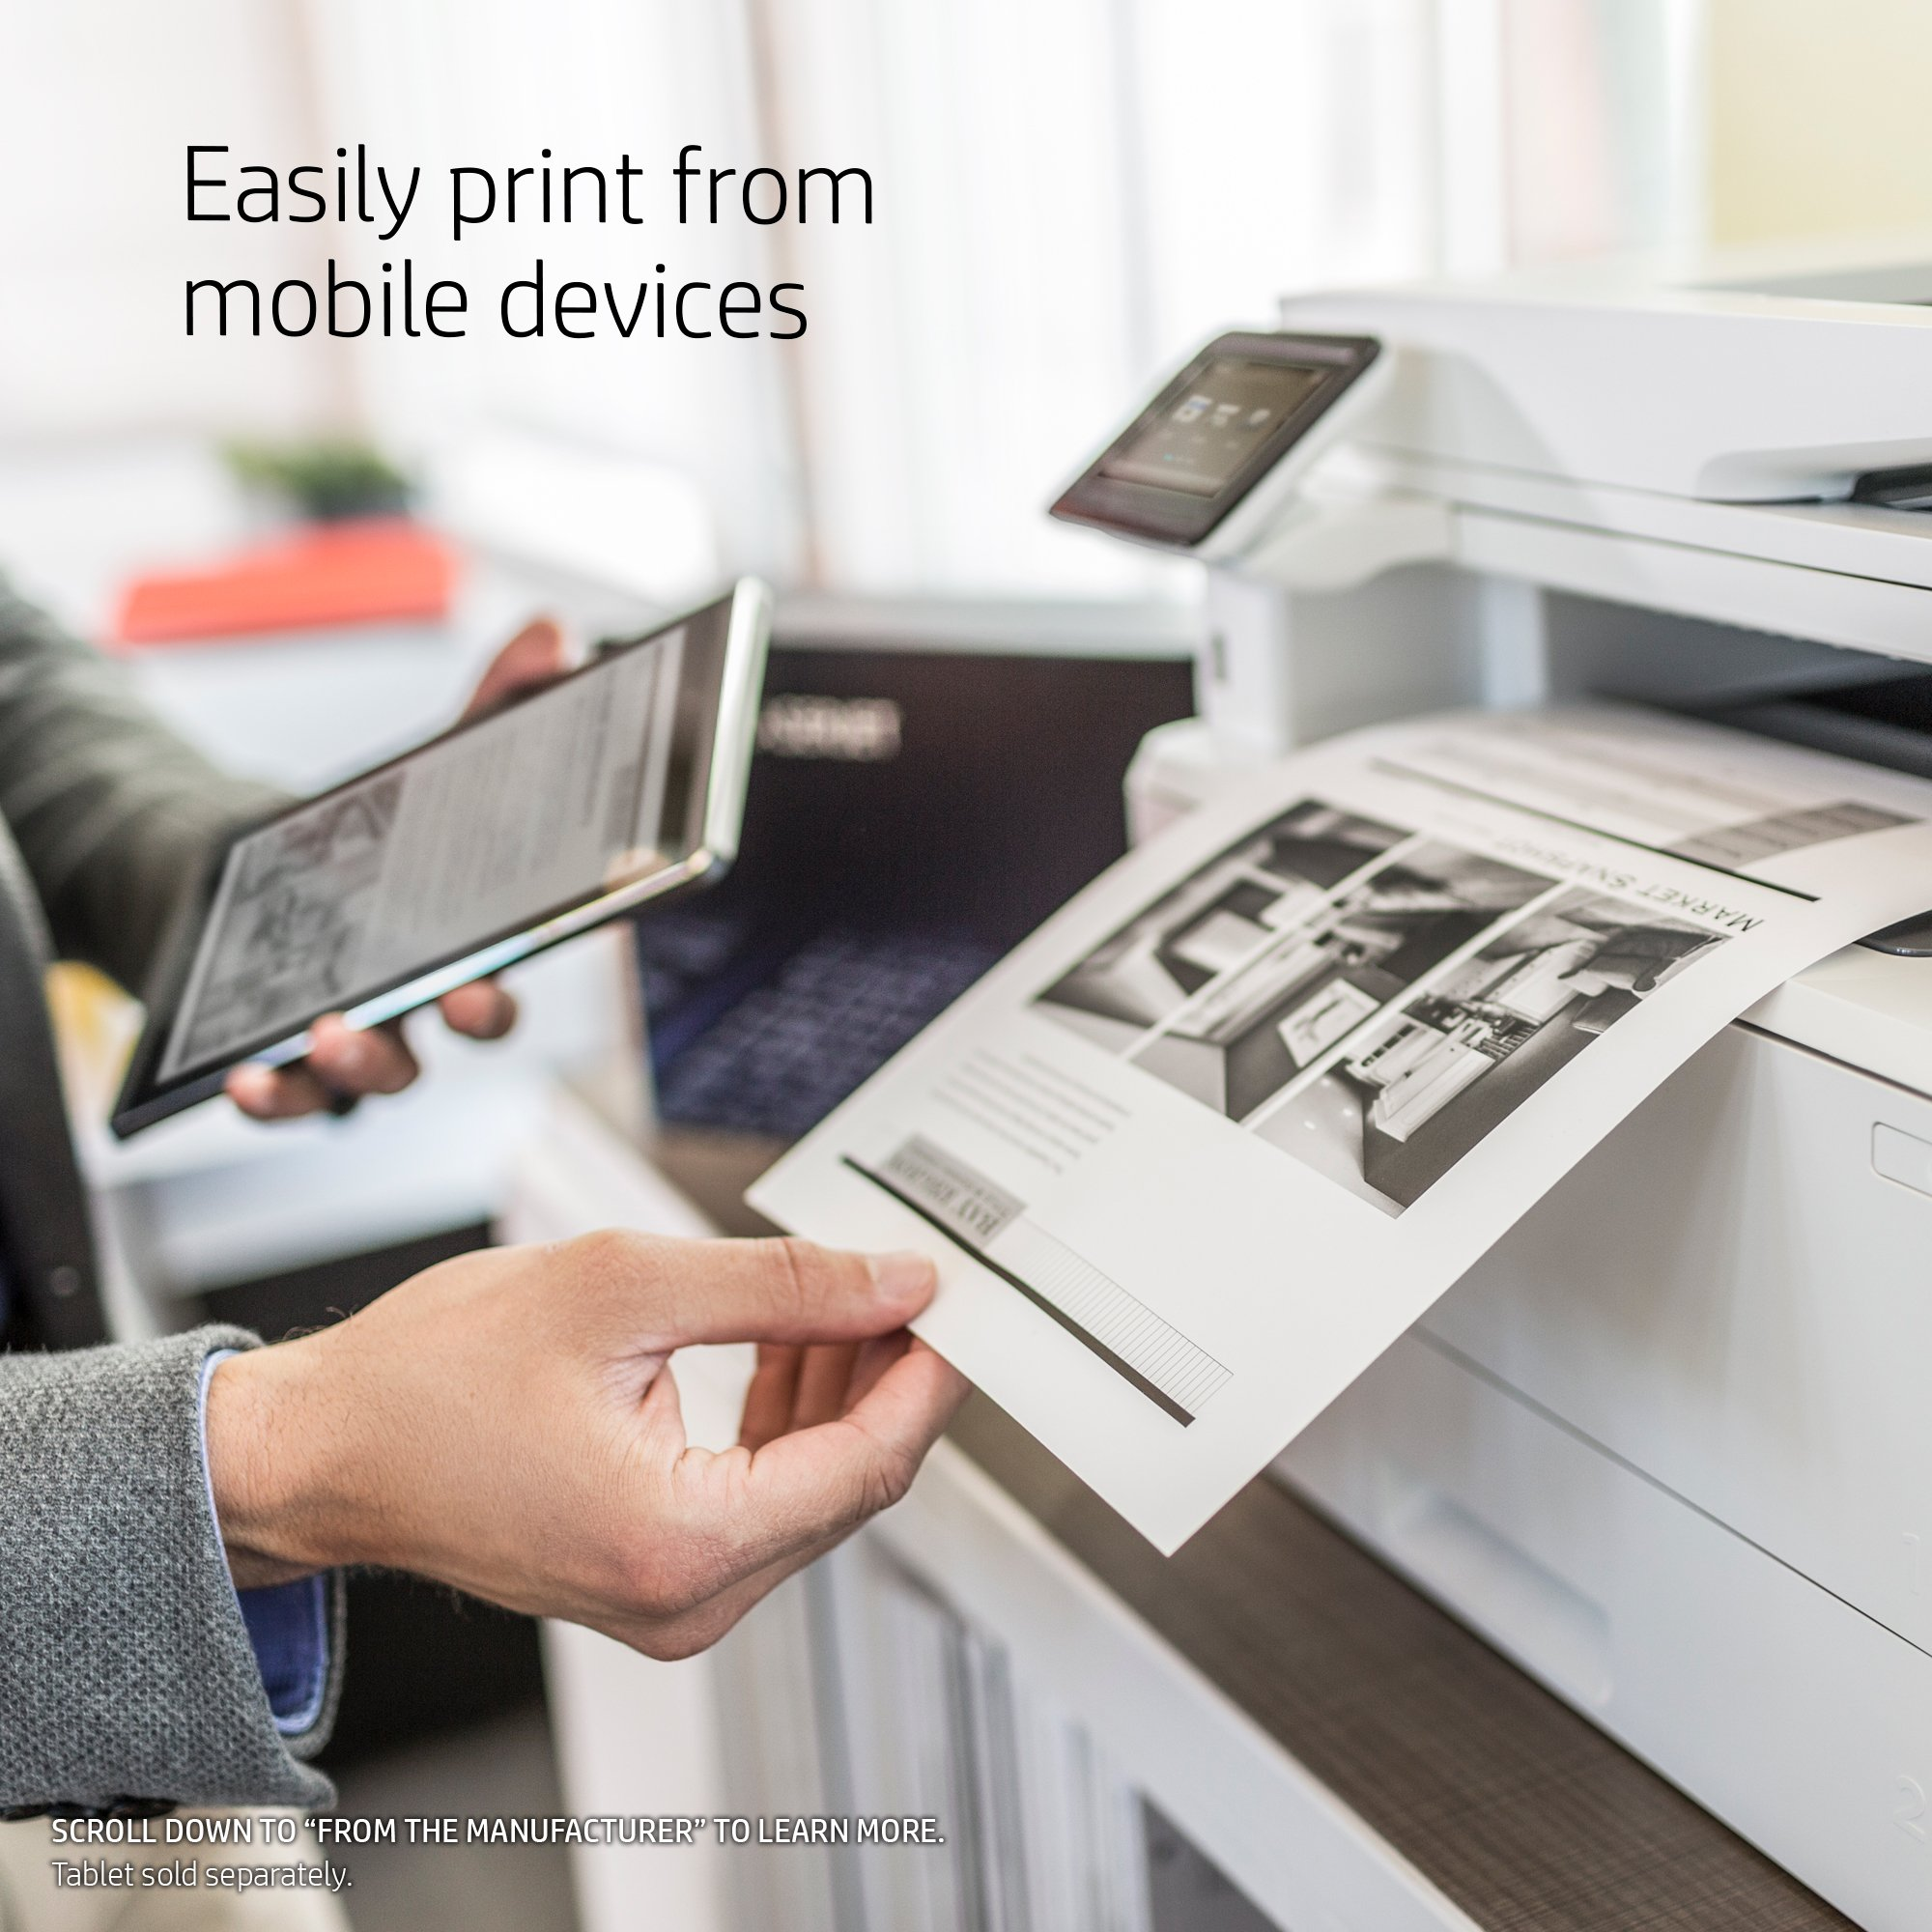 HP LaserJet Pro M426fdw All-in-One Wireless Laser Printer with Double-Sided Printing, Amazon Dash Replenishment ready (F6W15A) by HP (Image #4)